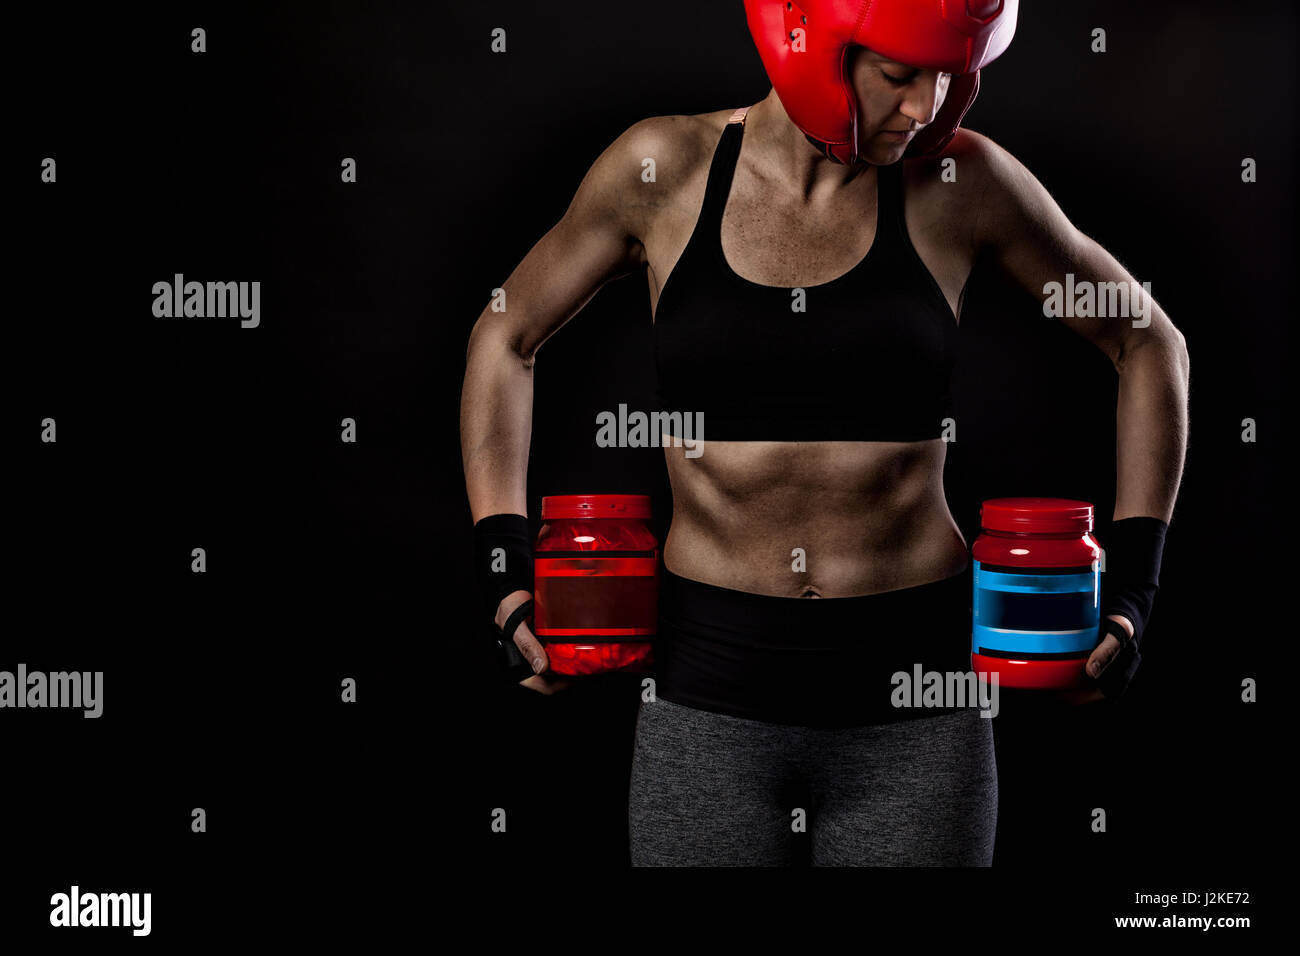 Female athlete with bodybuilding supplements and proteins - Stock Image